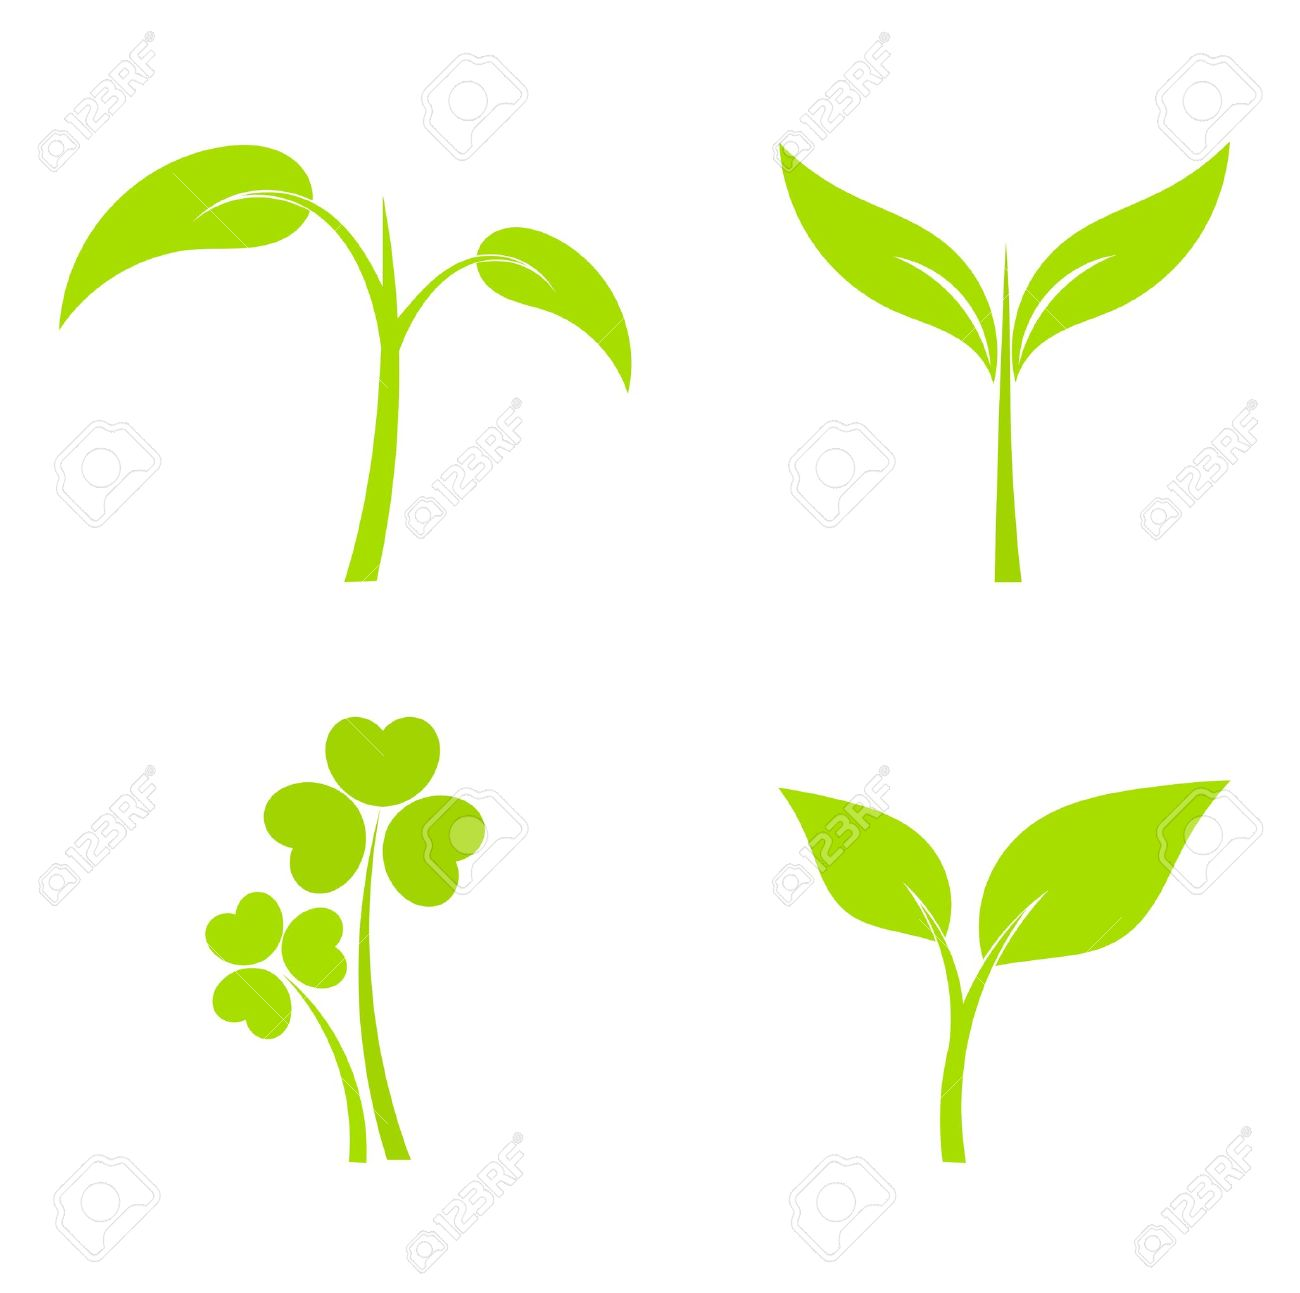 Set of four plant or leaf icons. Vector illustration Stock Vector - 18990527